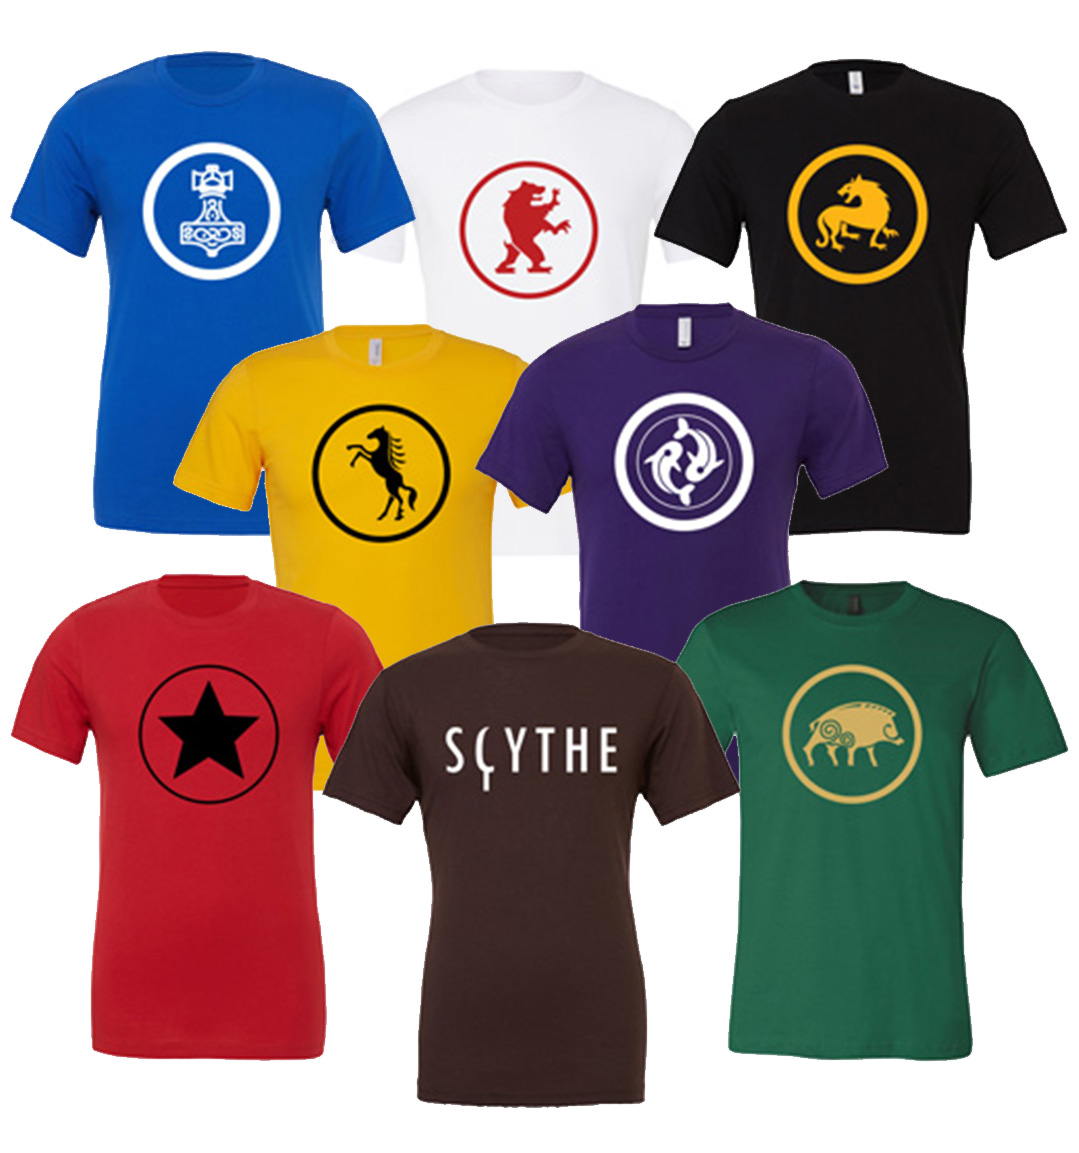 https://www.meeplesource.com/images/frontpage/Scythe-Shirts2.jpg